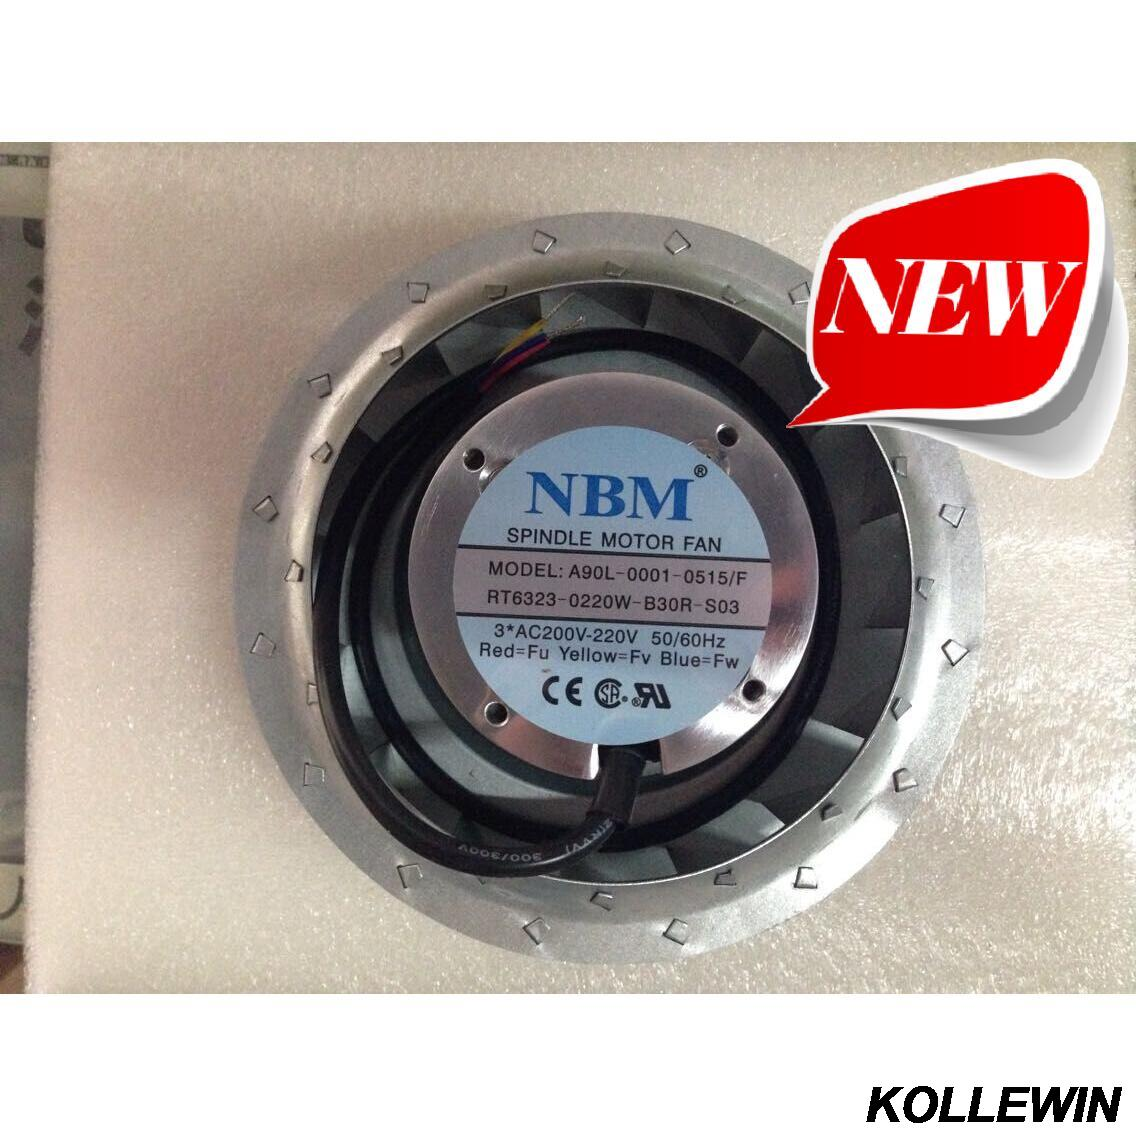 A90L-0001-0515/F new replacement Fan for fanuc spindle motor fast delivery 1 year warranty